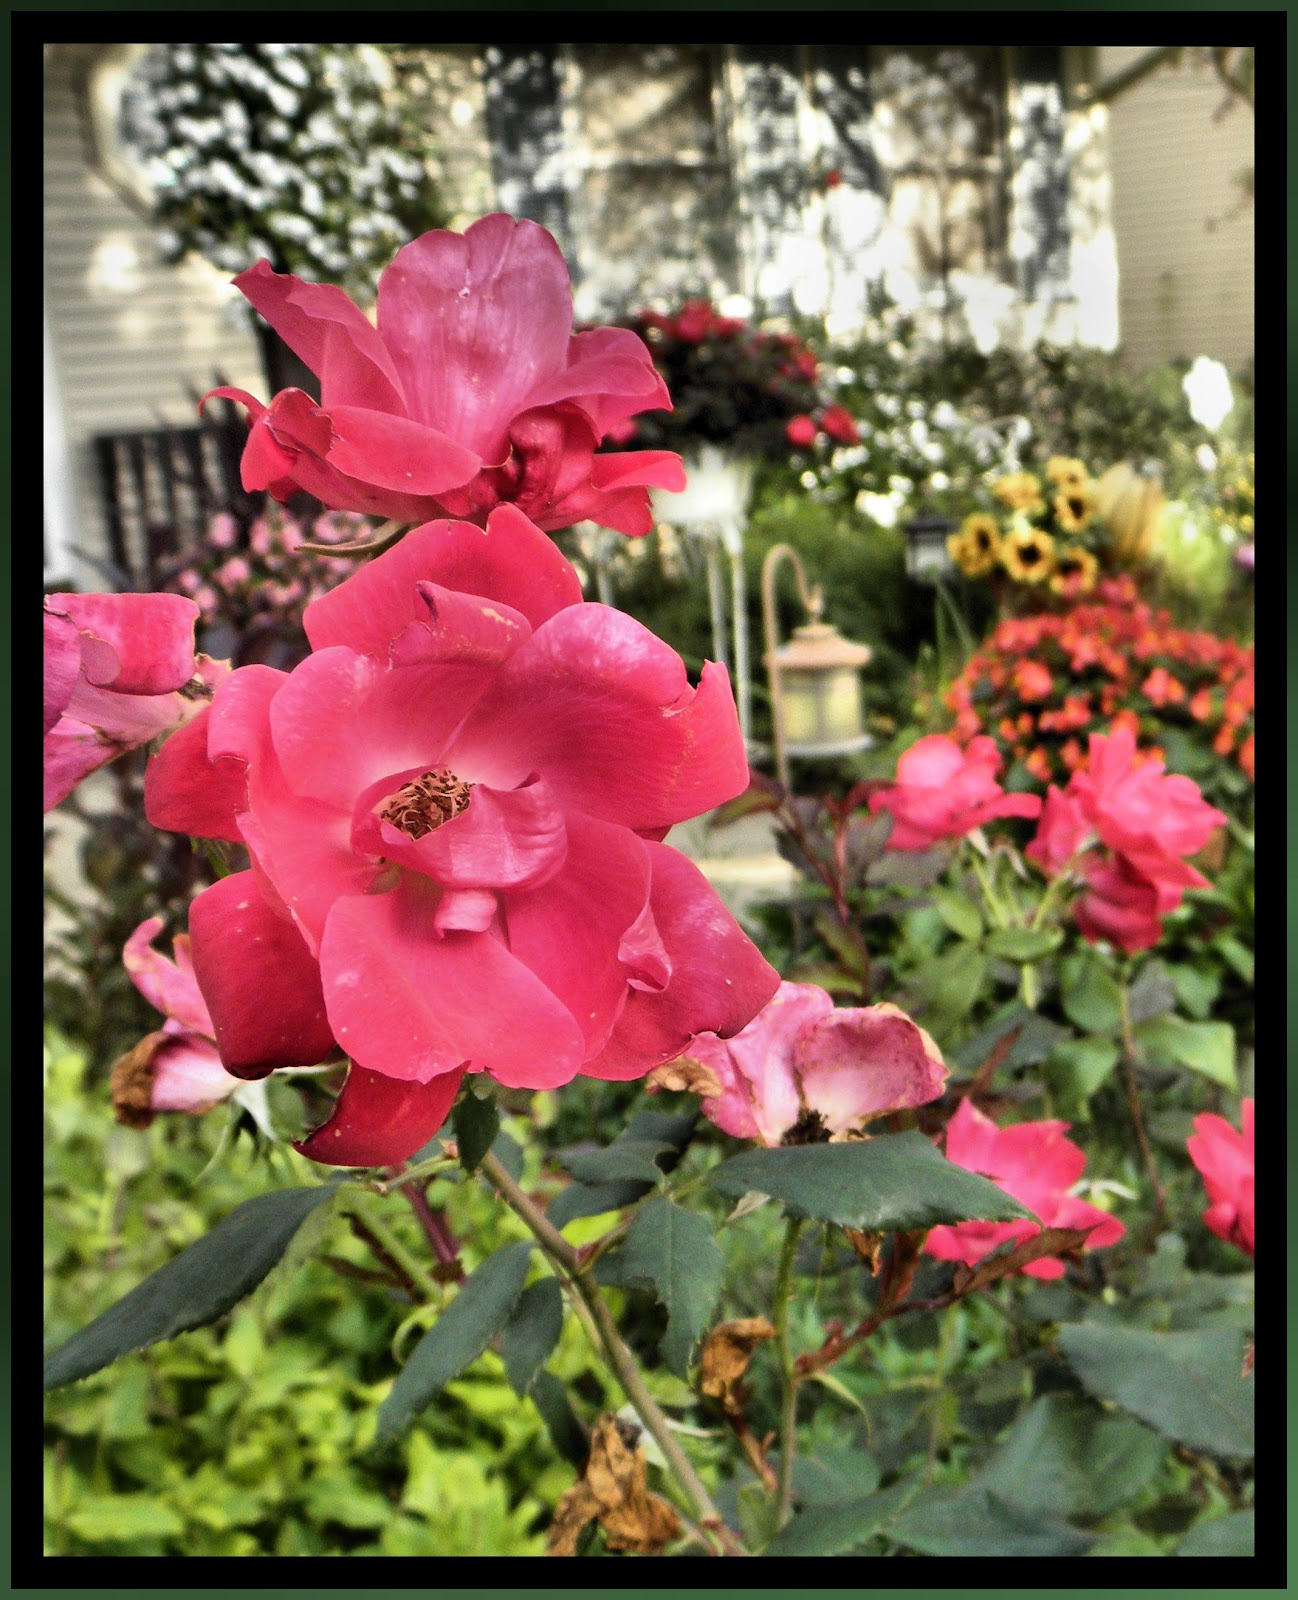 Christian Images In My Treasure Box: Beautiful Photos Of The Garden ...